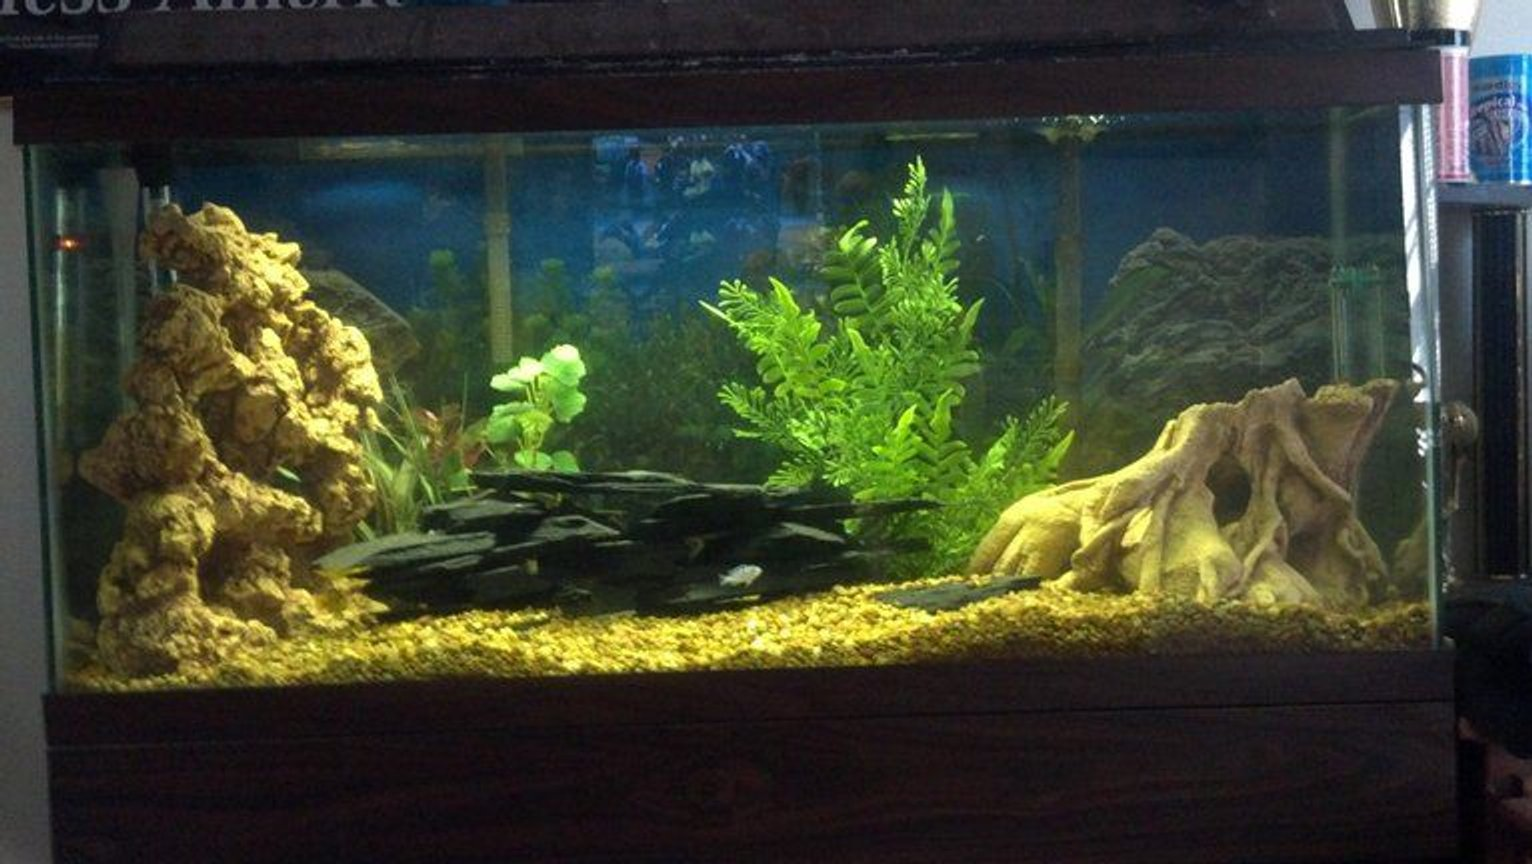 30 gallons freshwater fish tank (mostly fish and non-living decorations) - 1 kenyi 3 electric yellow would like to put 2 to 3 more fish in it. thinking about putting acei in it. suggestions would be appreciated